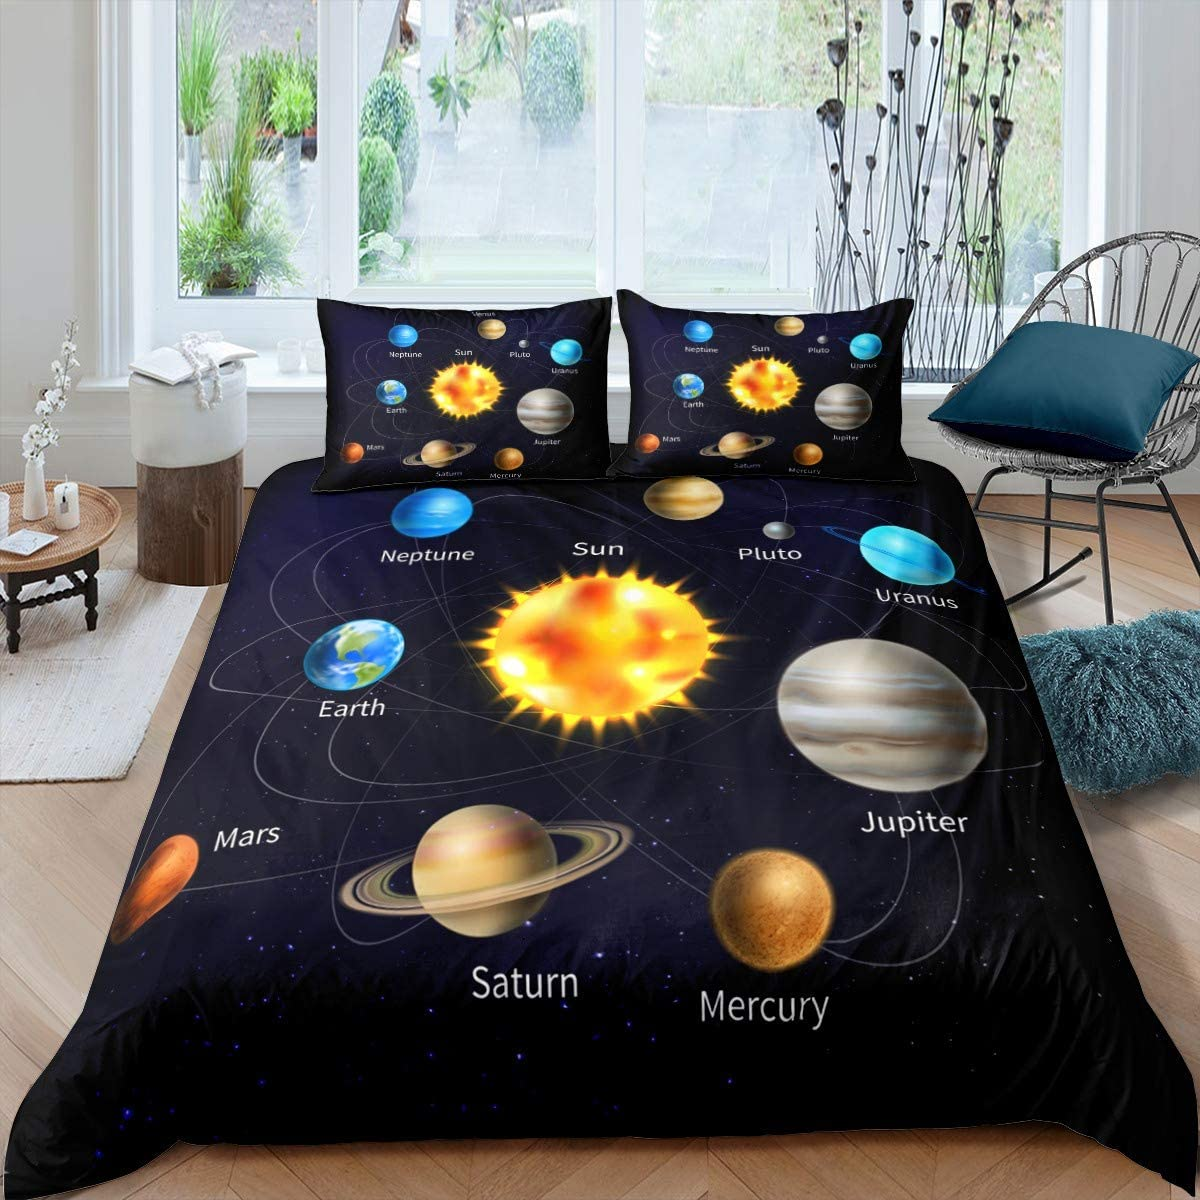 Loussiesd Cartoon Car Comforter Cover Taxi Decor Duvet Cover Colorful Theme Bedding Set Navy Blue Soft Quilt Cover for Kids Boys Girls Teens 1 Duvet Cover with 1 Pillow Case Twin Size